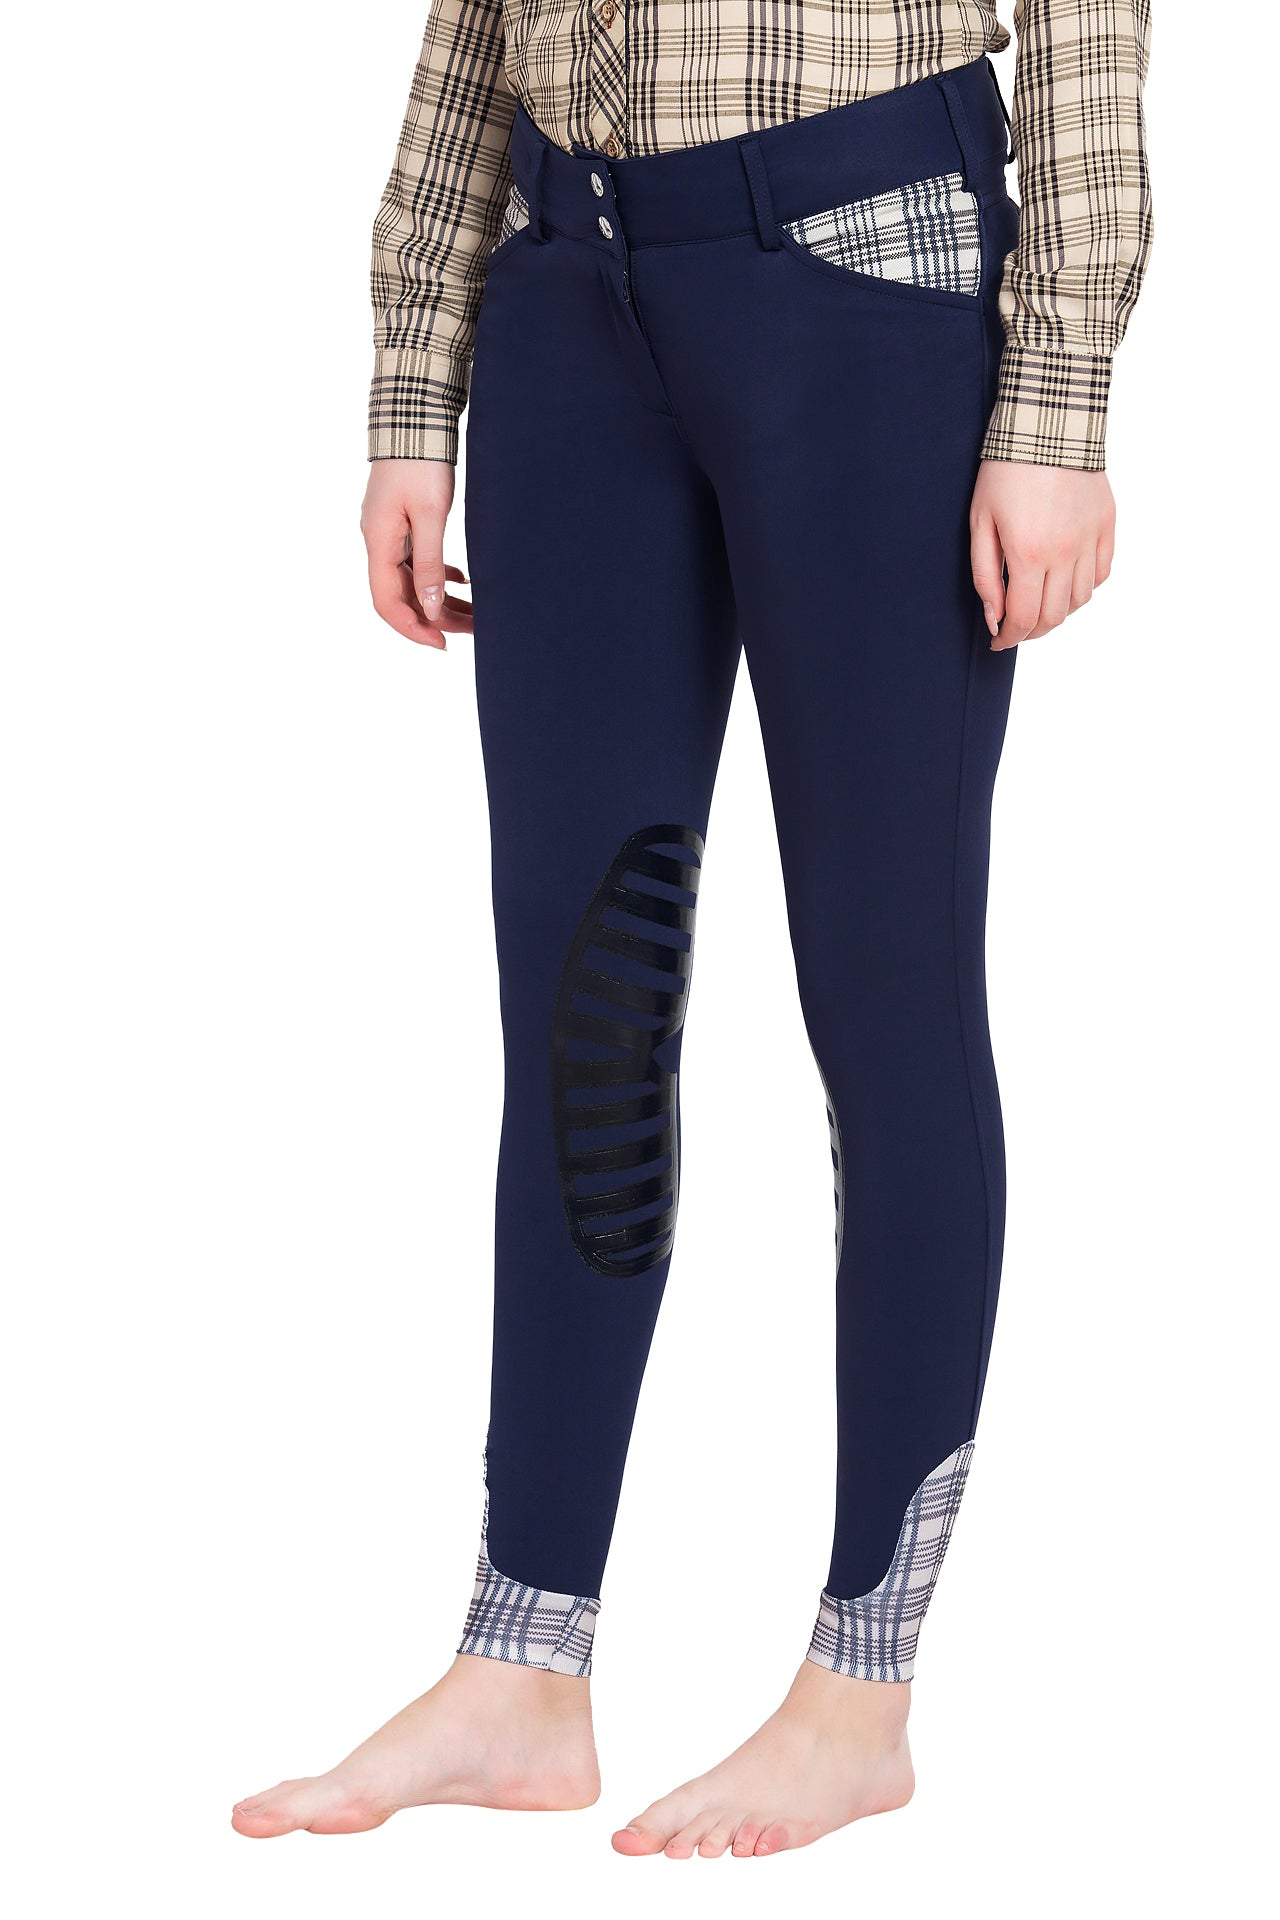 5/A Baker Ladies Pro Silicone Knee Patch Breeches - 5/A Baker - Breeches.com